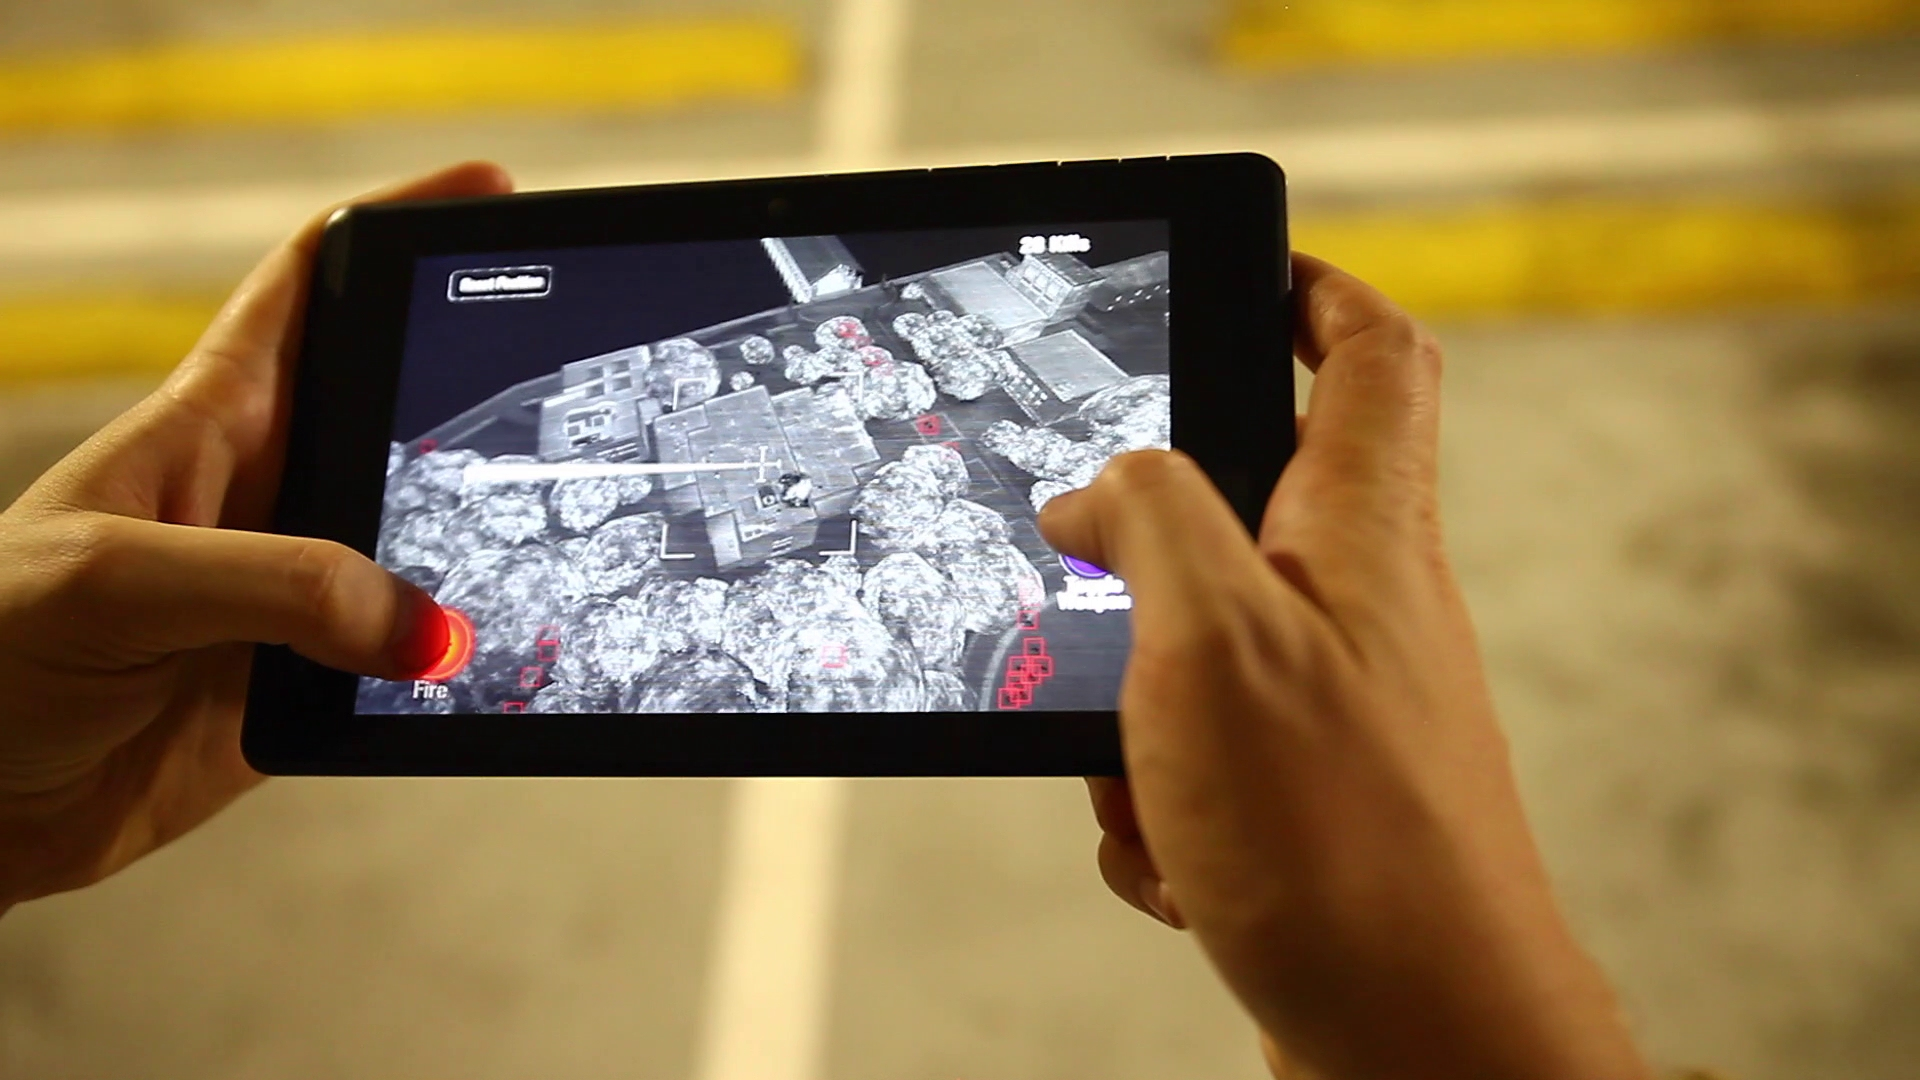 Zombie Gunship Reality uses Google's Project Tango to map all your 3D movements to a gunship